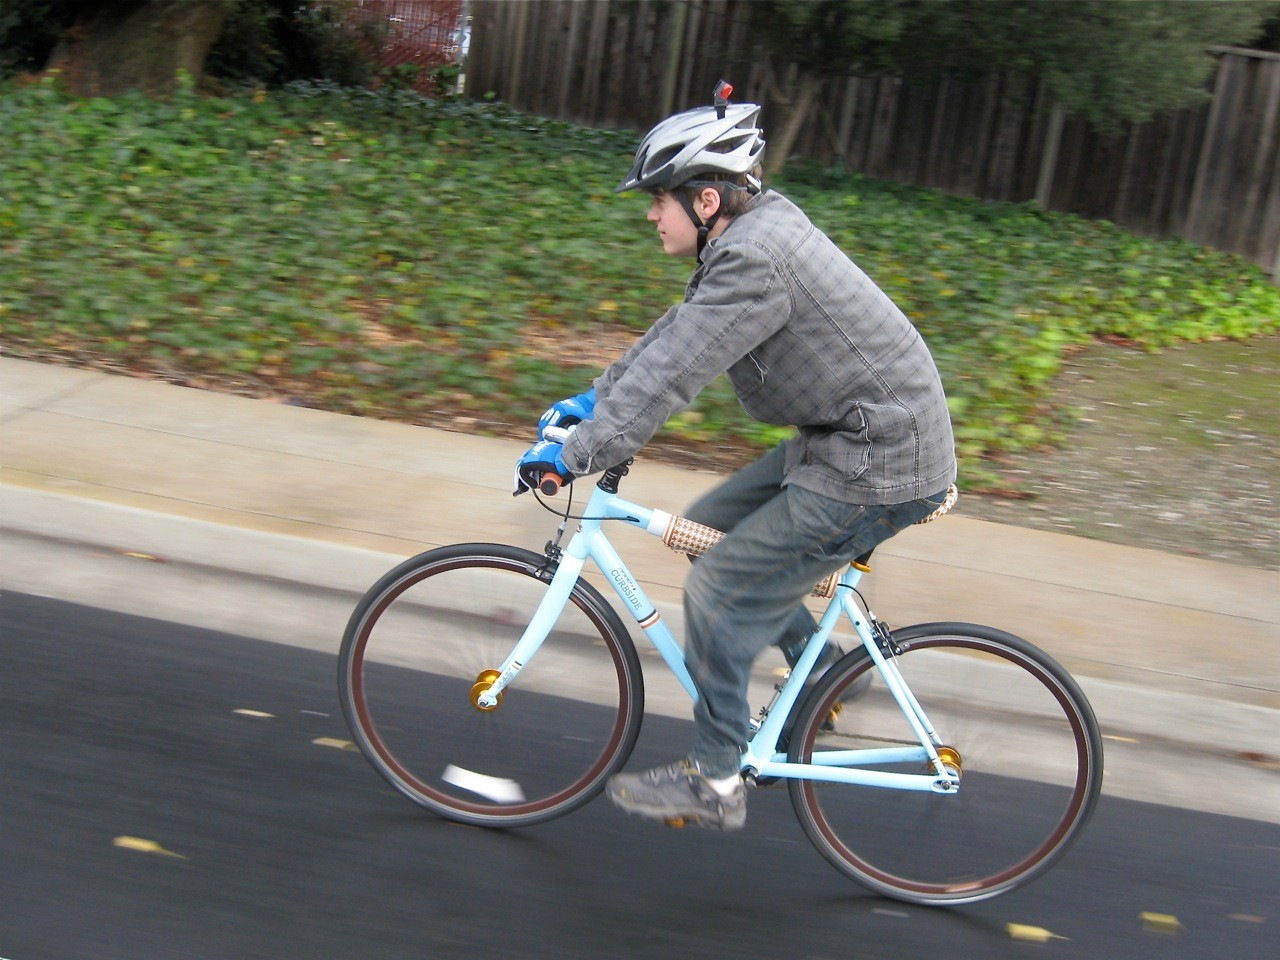 Our guest blogger, enjoying a post-Christmas fixie ride with friends in Mountain View, California.